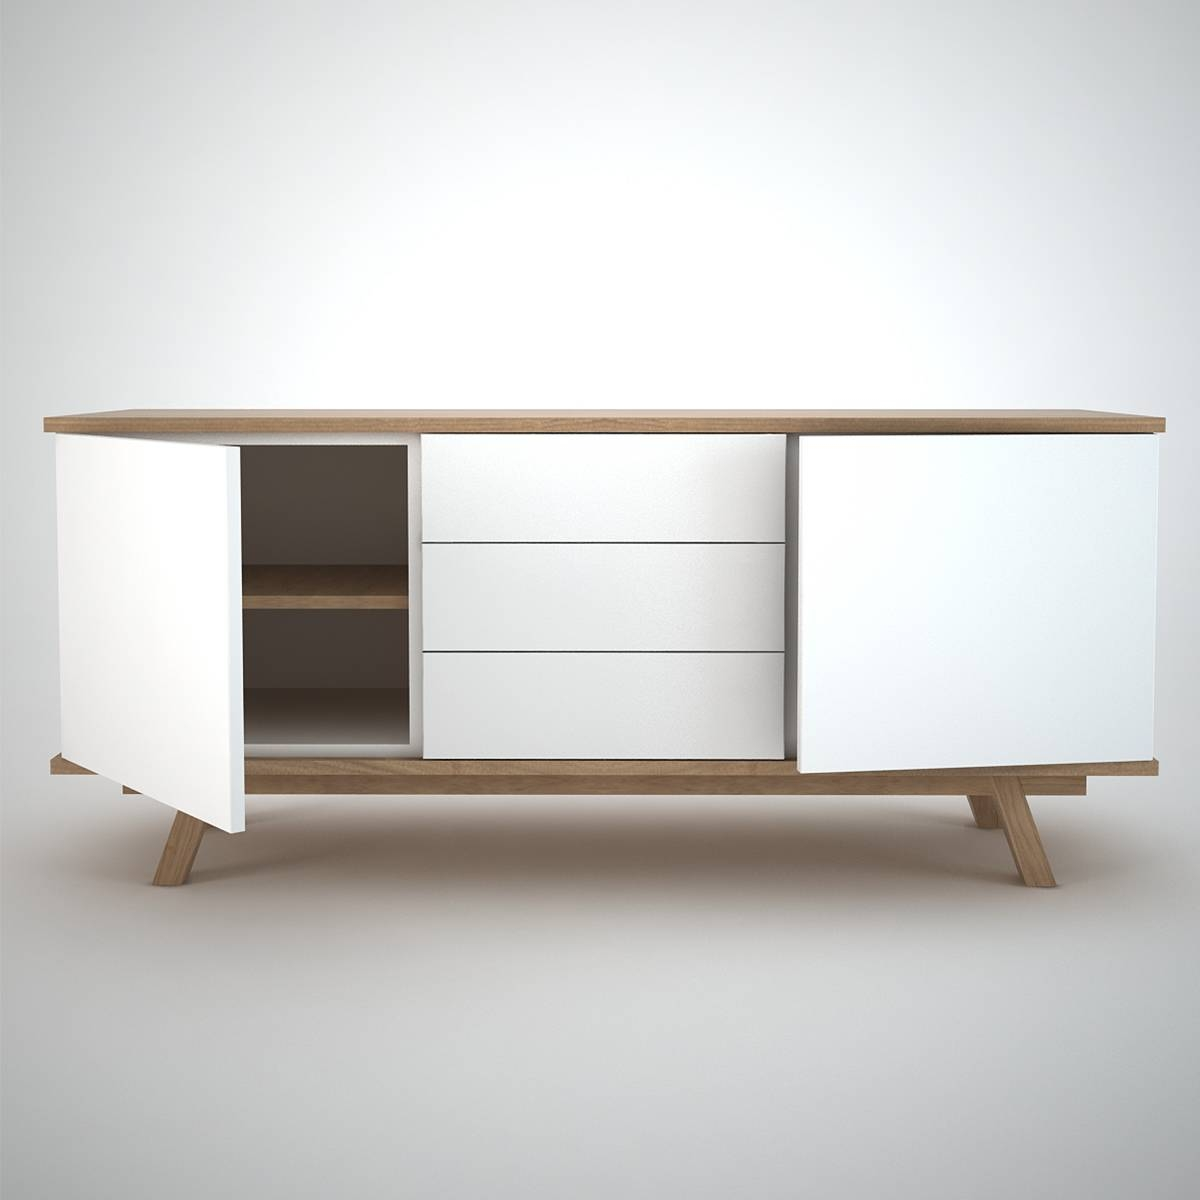 Perfect Modern White Sideboards 28 On With Modern White Sideboards Intended For Modern White Sideboards (View 9 of 15)